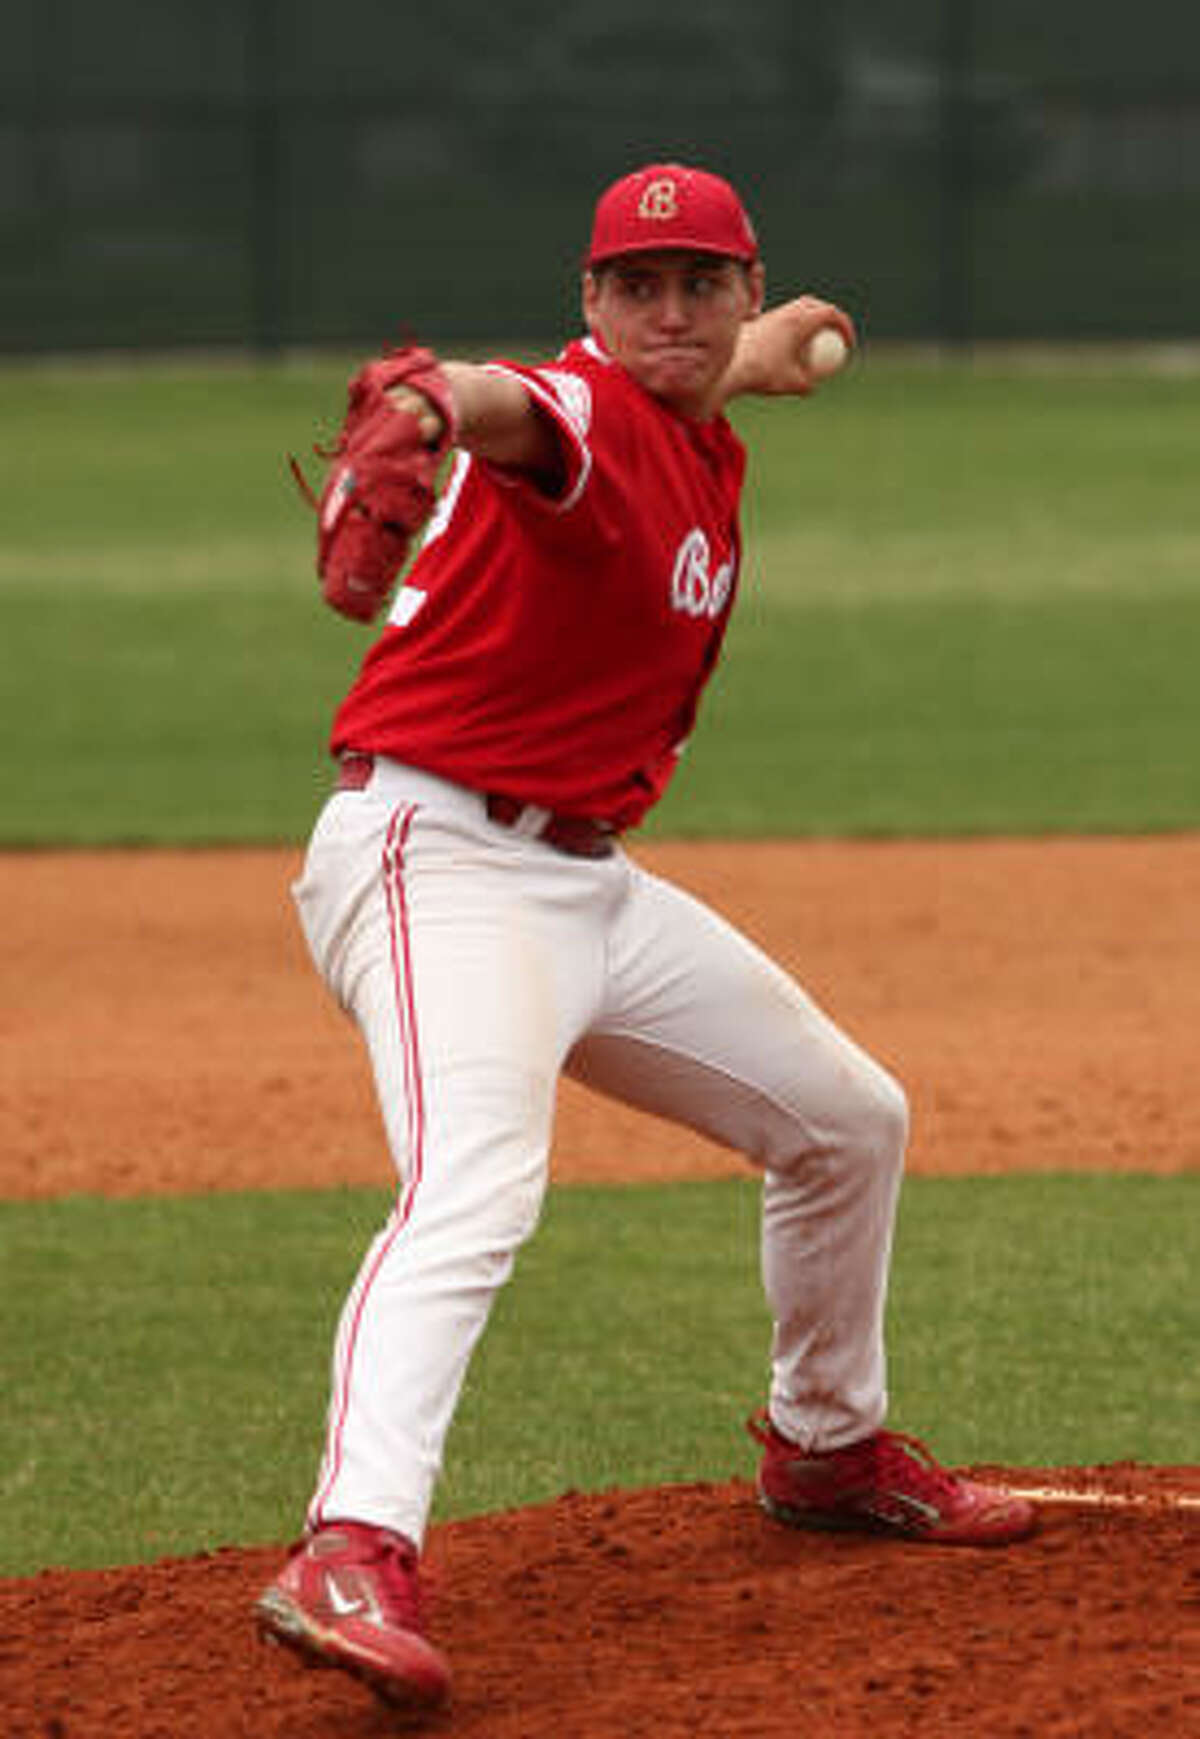 Junior pitcher Toller Boardman was 2-0 on the mound with 10 strikeouts this week, which included a two-hit, seven strikeout performance in a 4-1 win over Westside on Saturday.